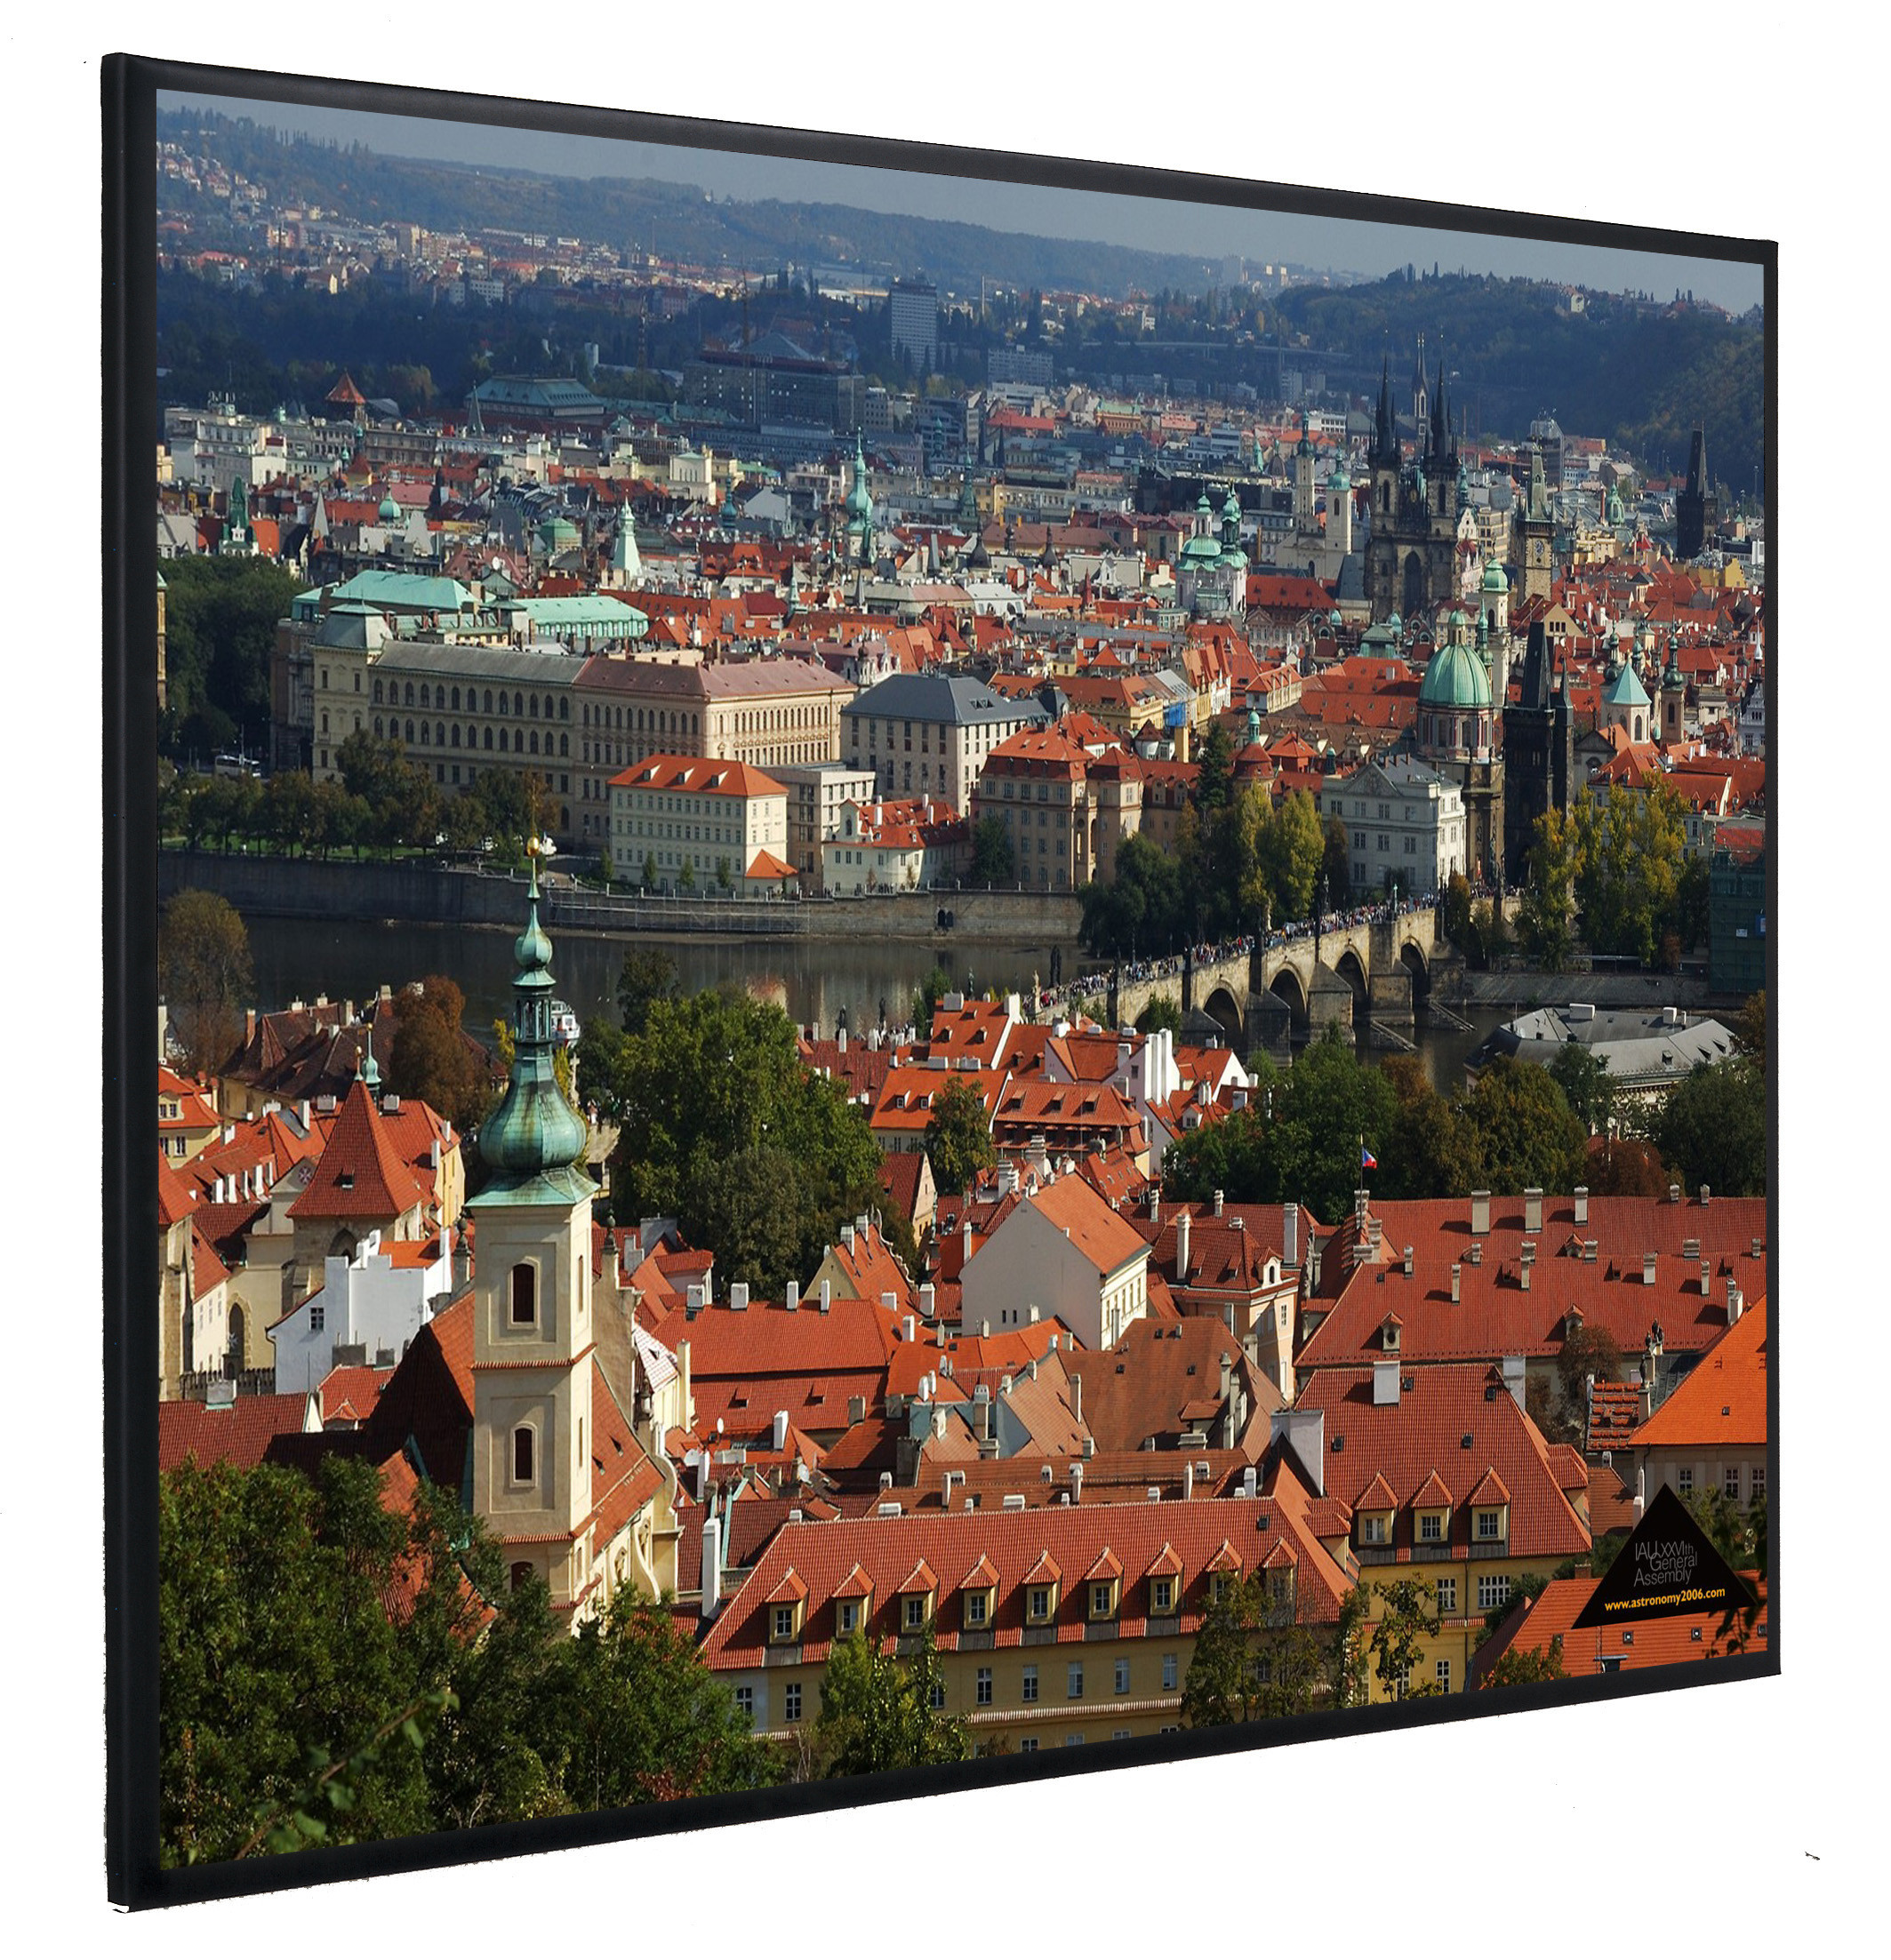 Vision Light 220 x 165 cm video format og Veltex ramme